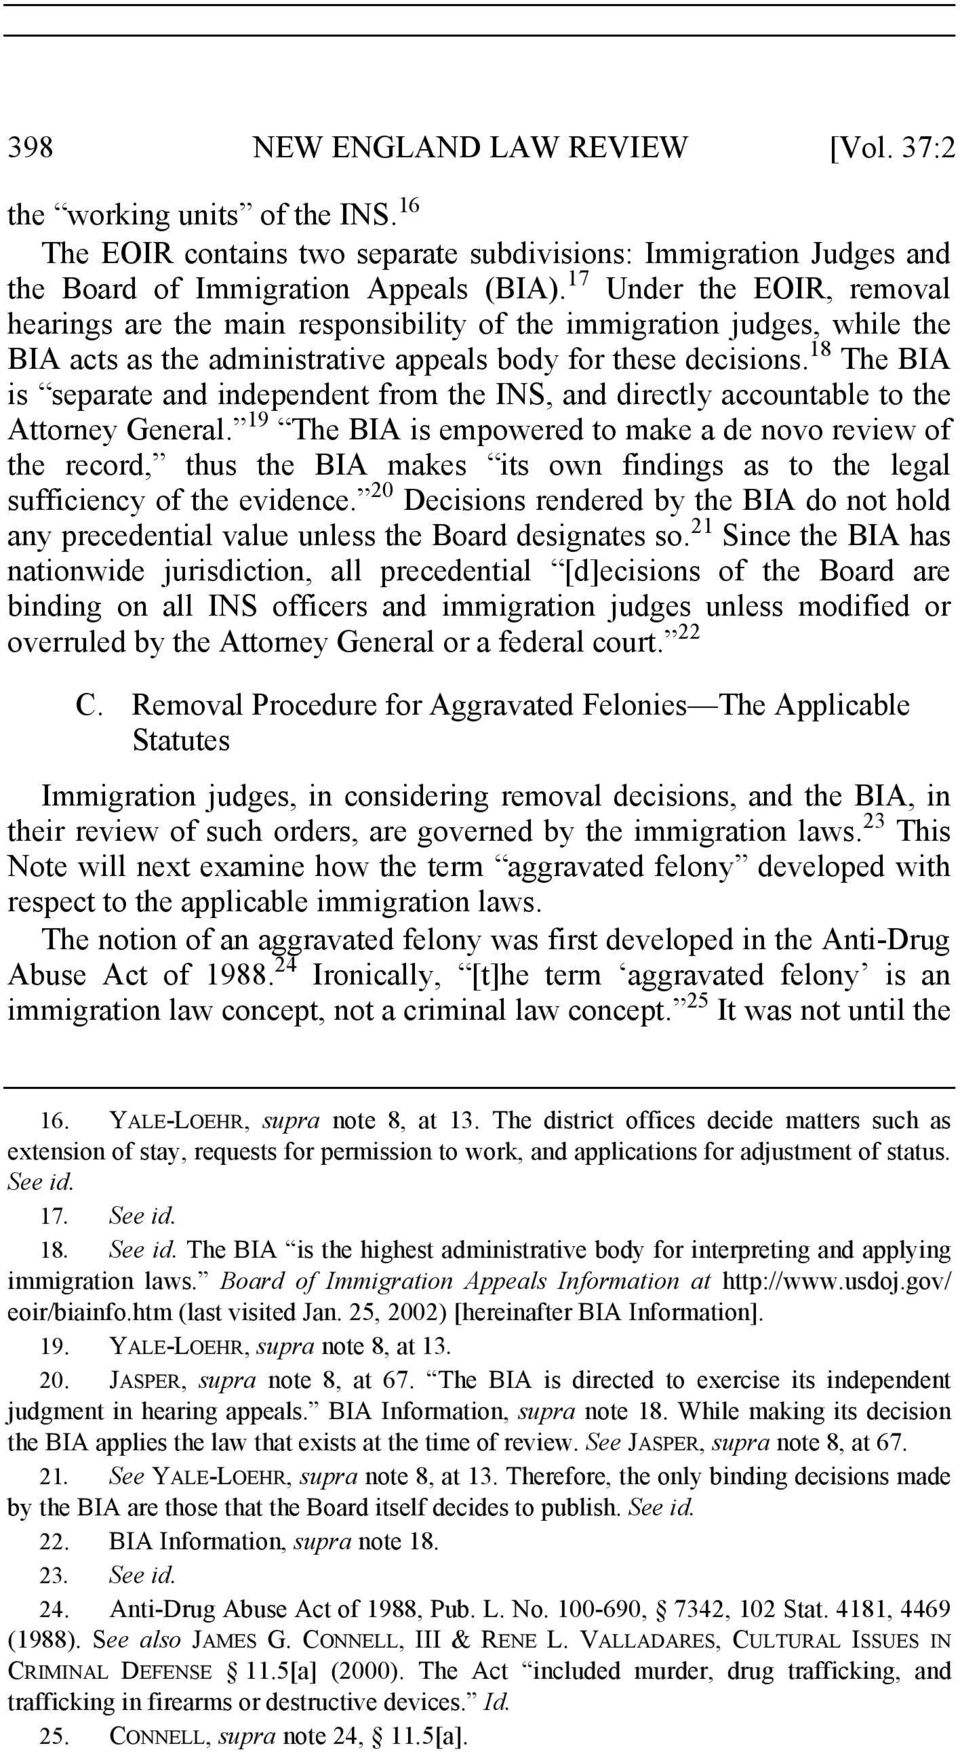 18 The BIA is separate and independent from the INS, and directly accountable to the Attorney General.